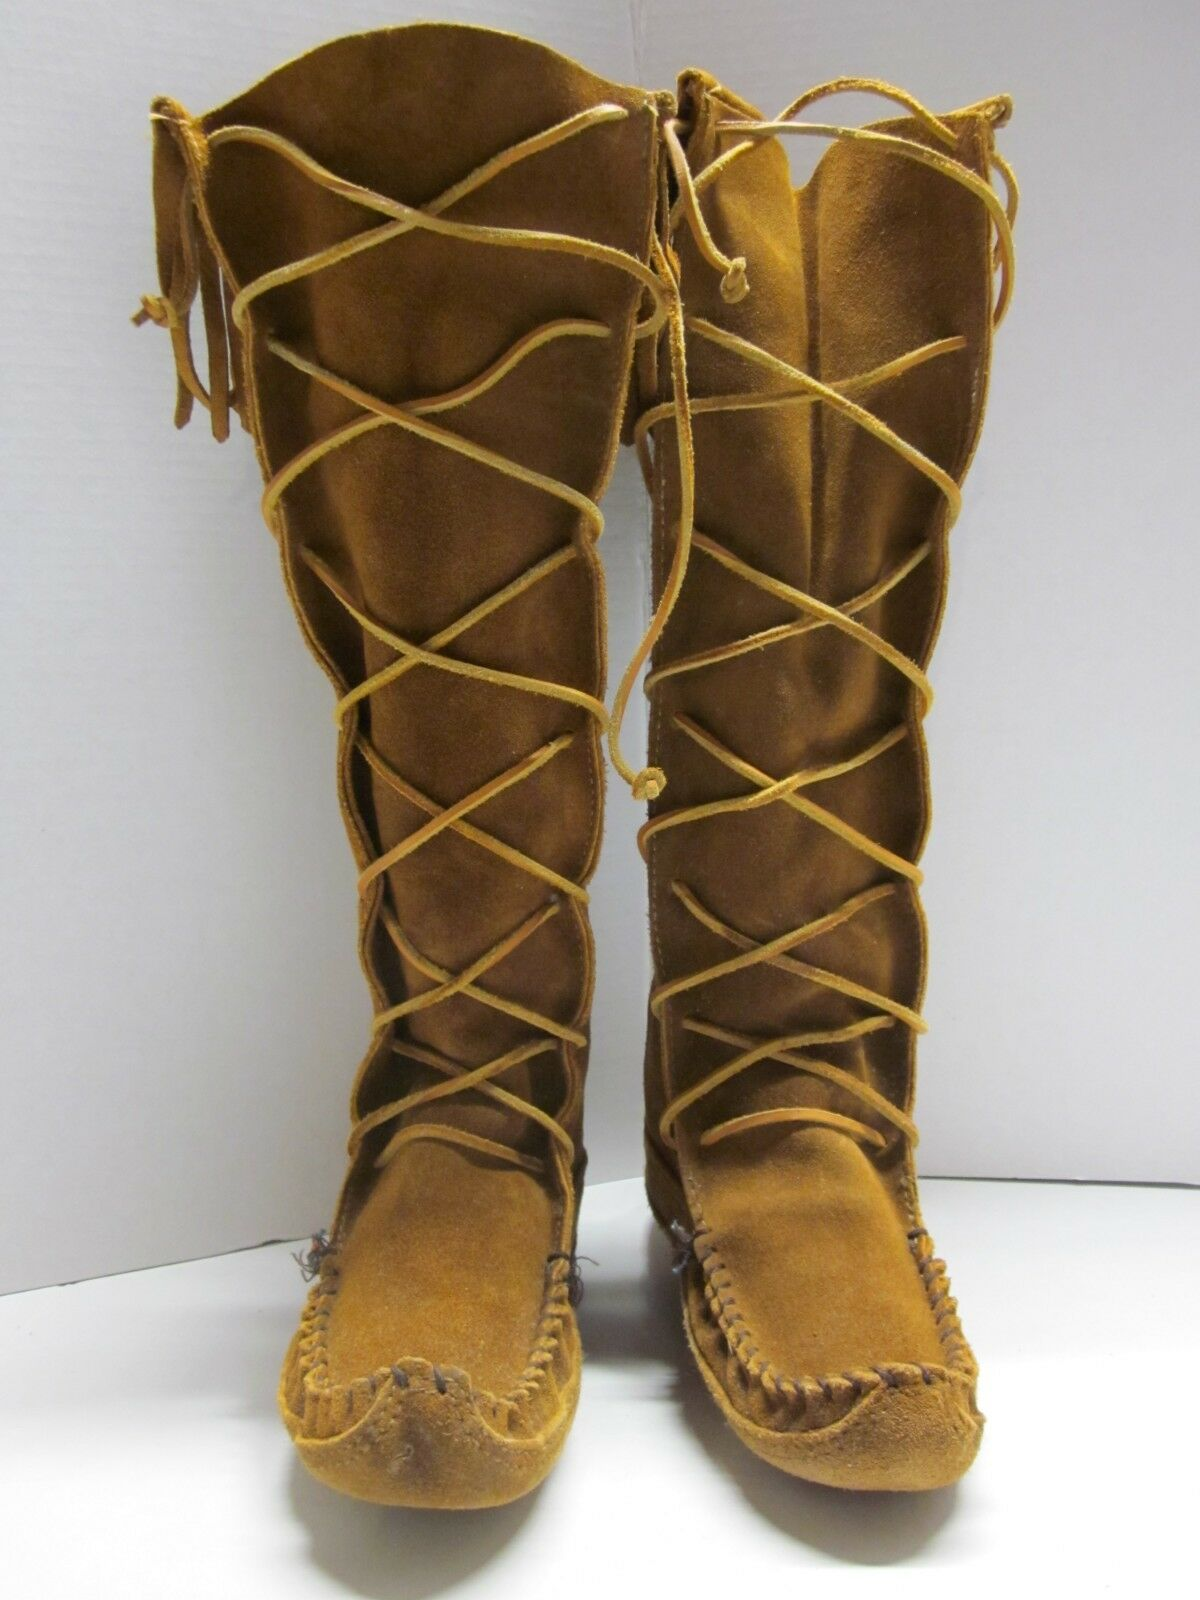 Vtg MINNETONKA 1322 Tall Lace Up Moccasin Boot shoes Fringe Brown Suede Leather 7